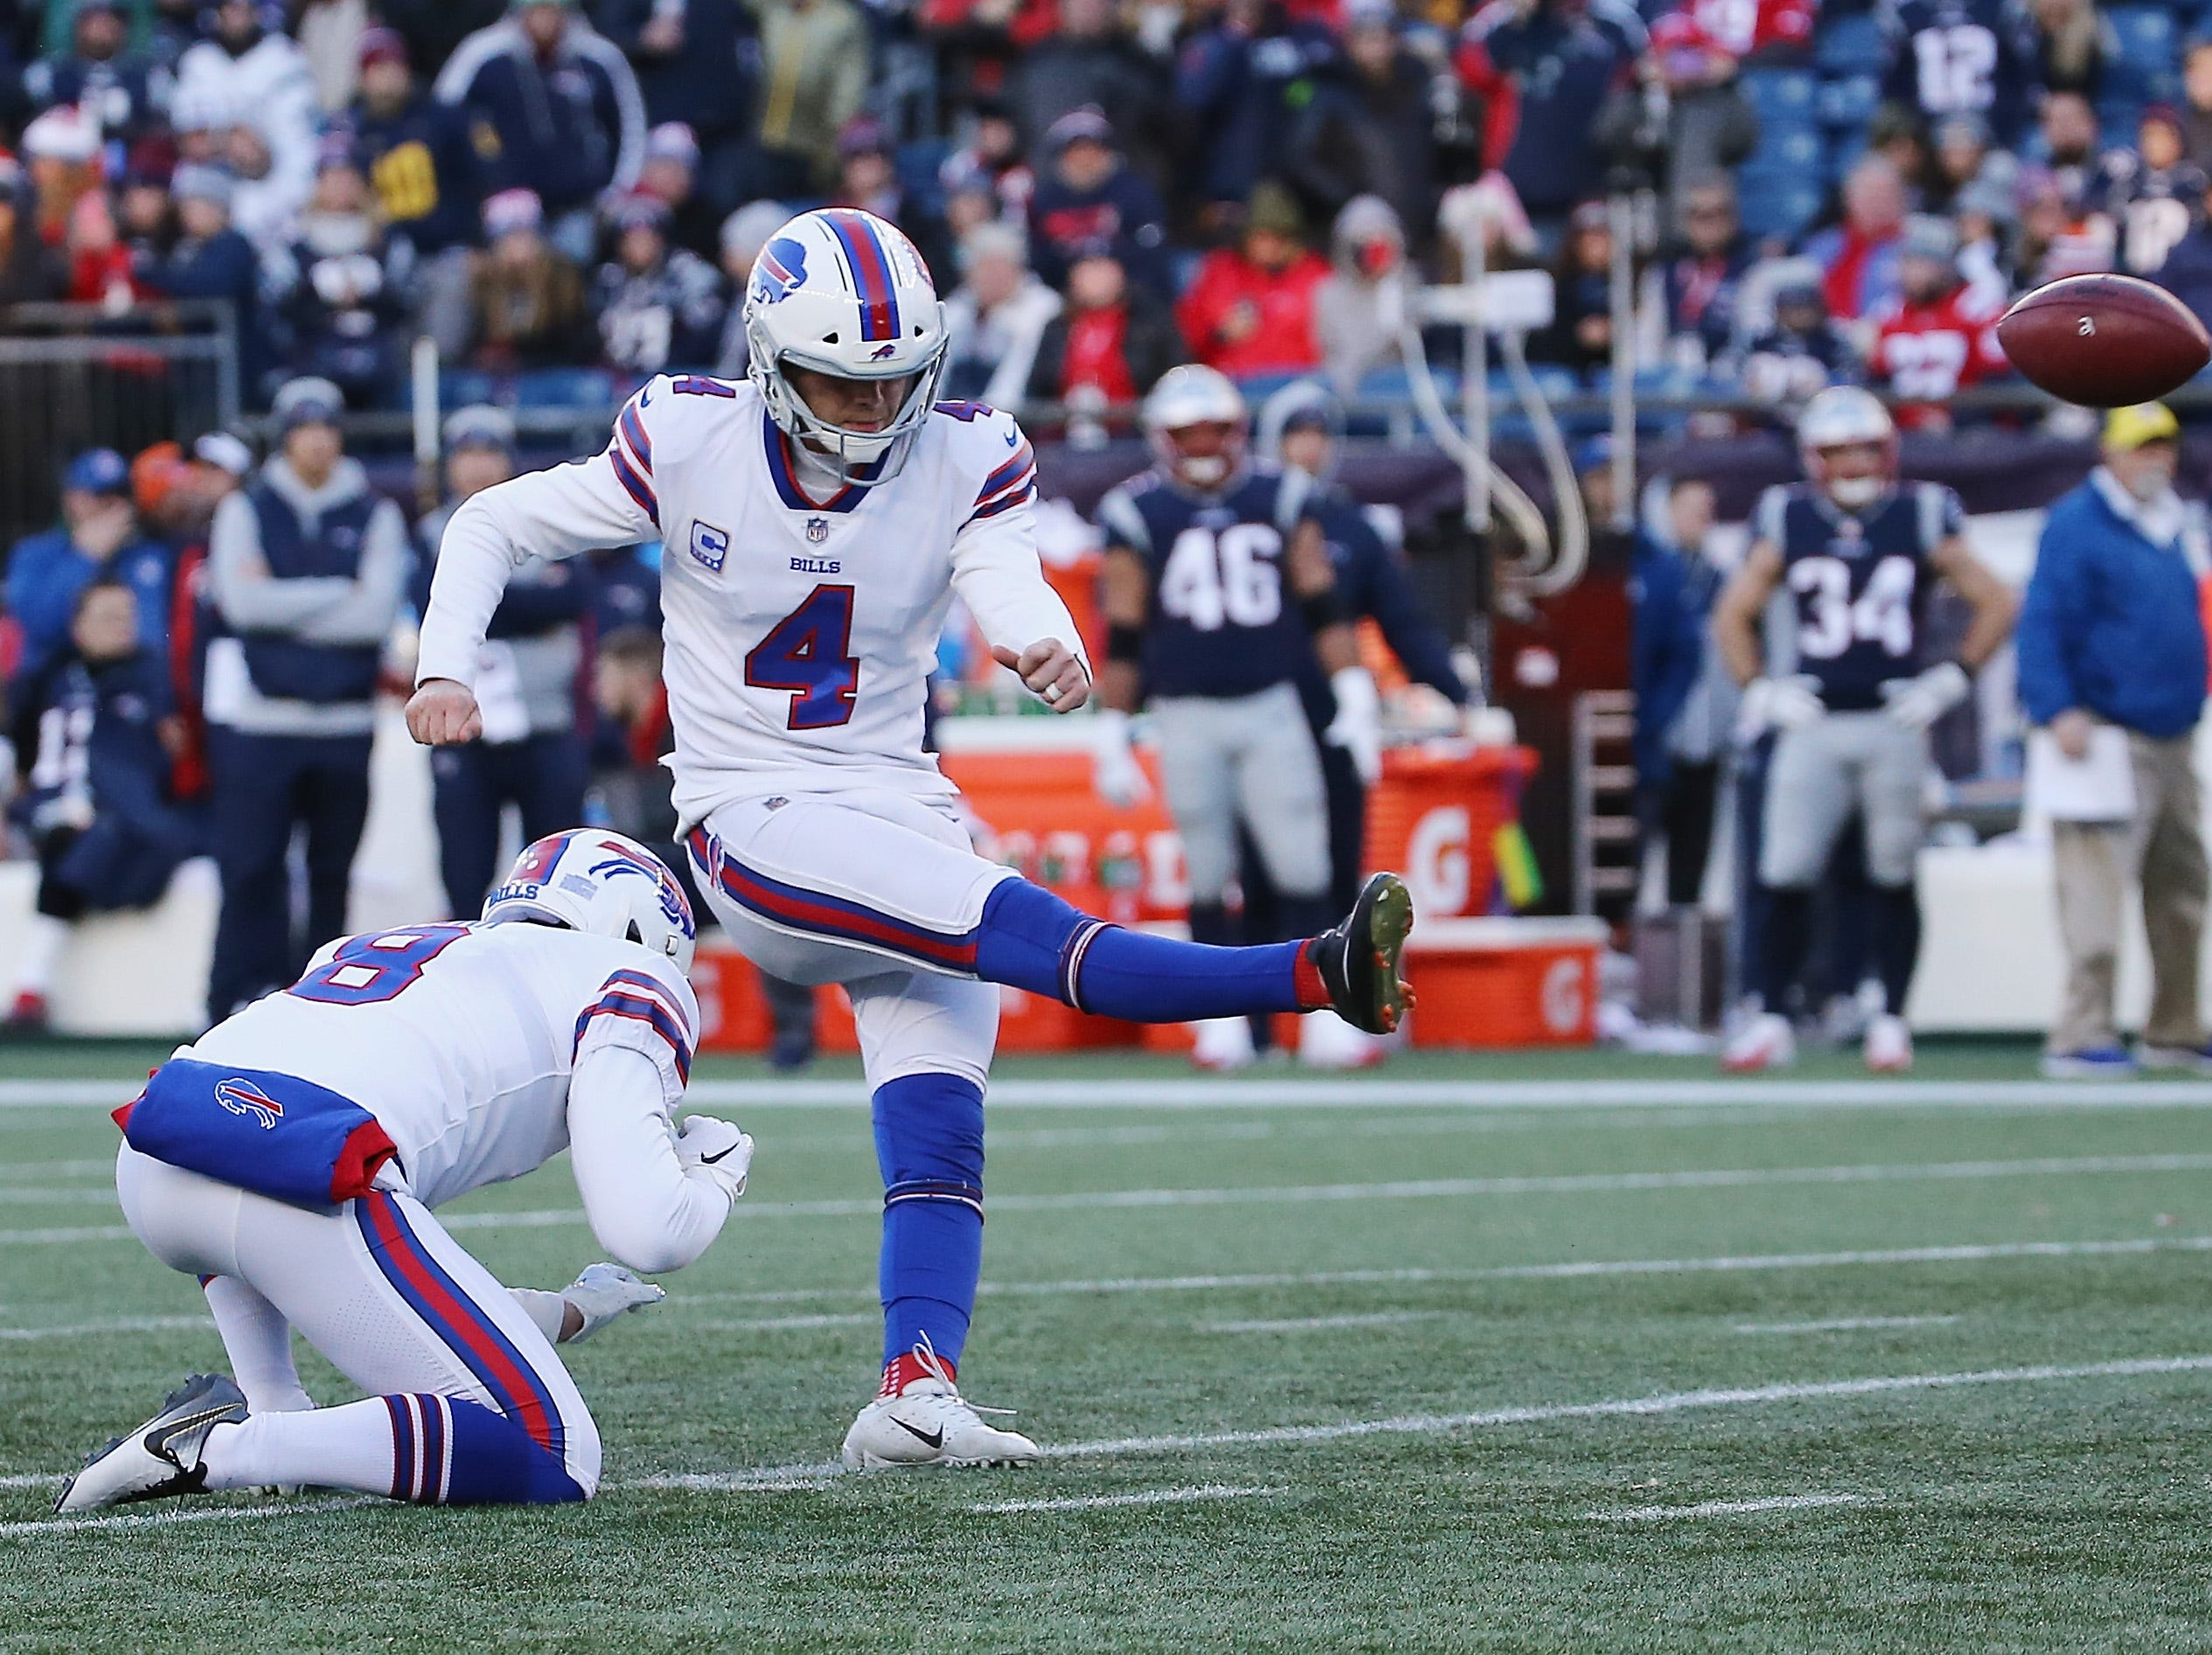 FOXBOROUGH, MA - DECEMBER 23:  Stephen Hauschka #4 of the Buffalo Bills kicks a field goal during the third quarter against the New England Patriots at Gillette Stadium on December 23, 2018 in Foxborough, Massachusetts.  (Photo by Jim Rogash/Getty Images)